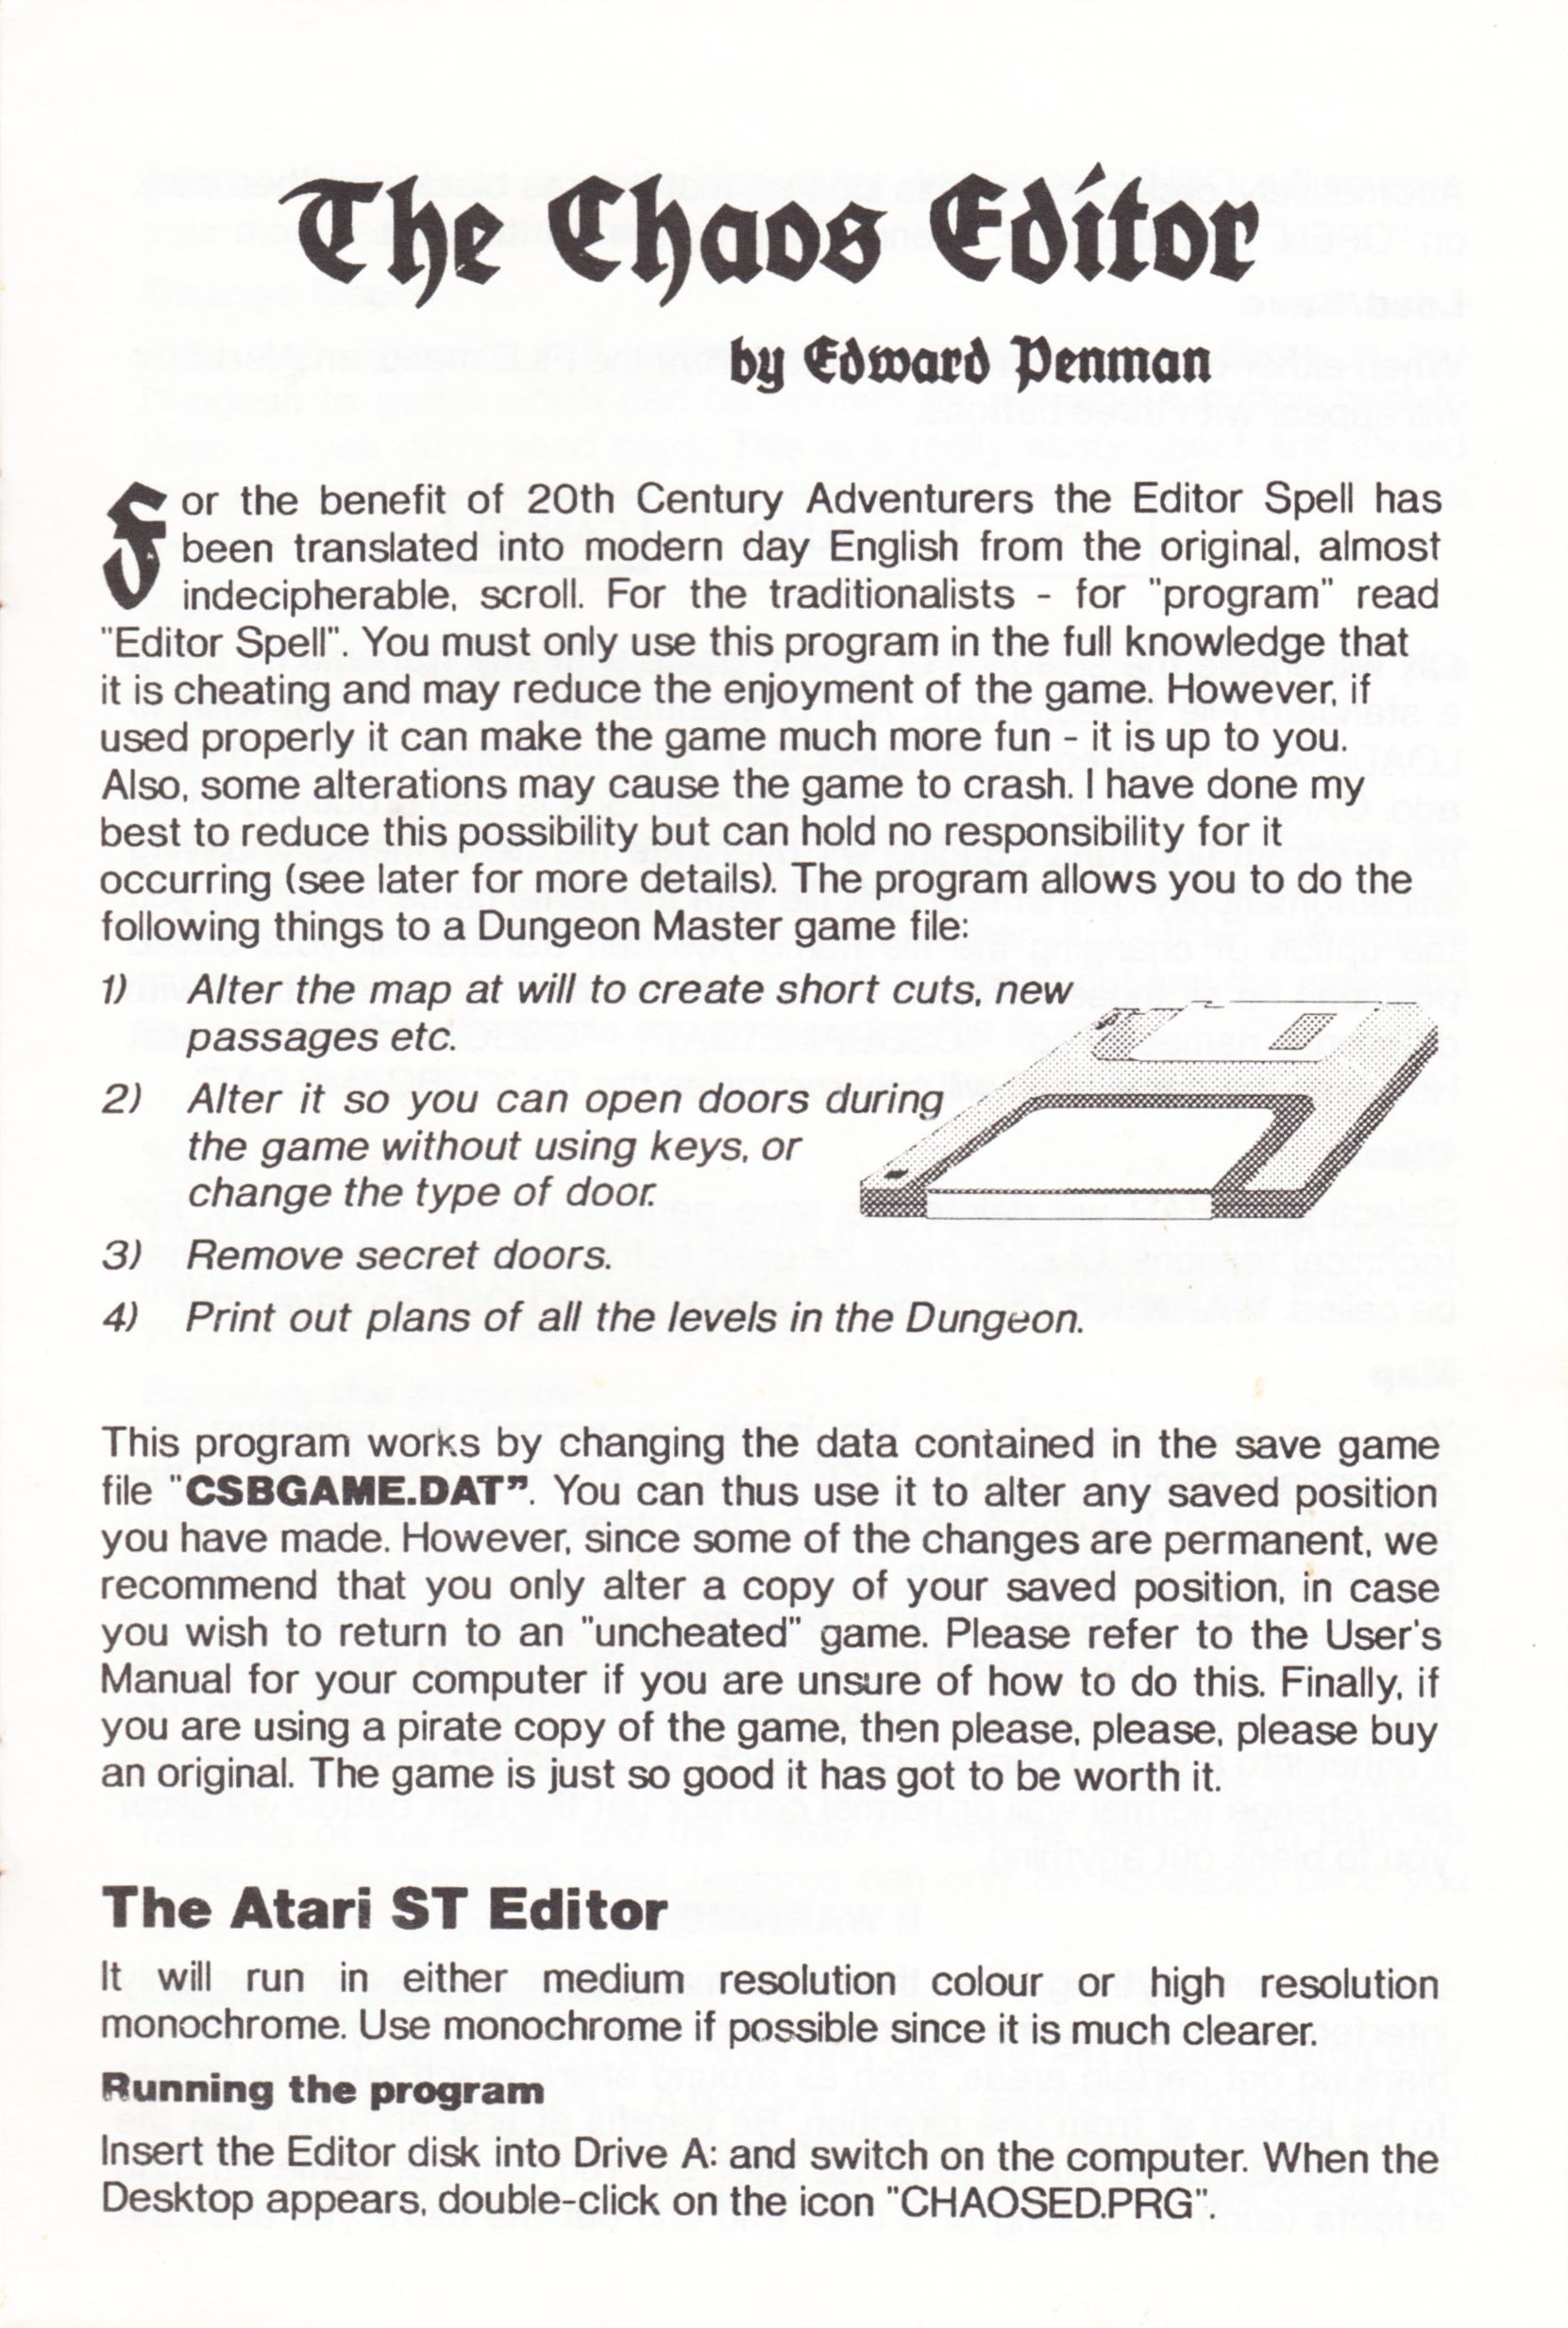 Tool - The Chaos Editor - UK - Atari ST - Manual - Page 015 - Scan